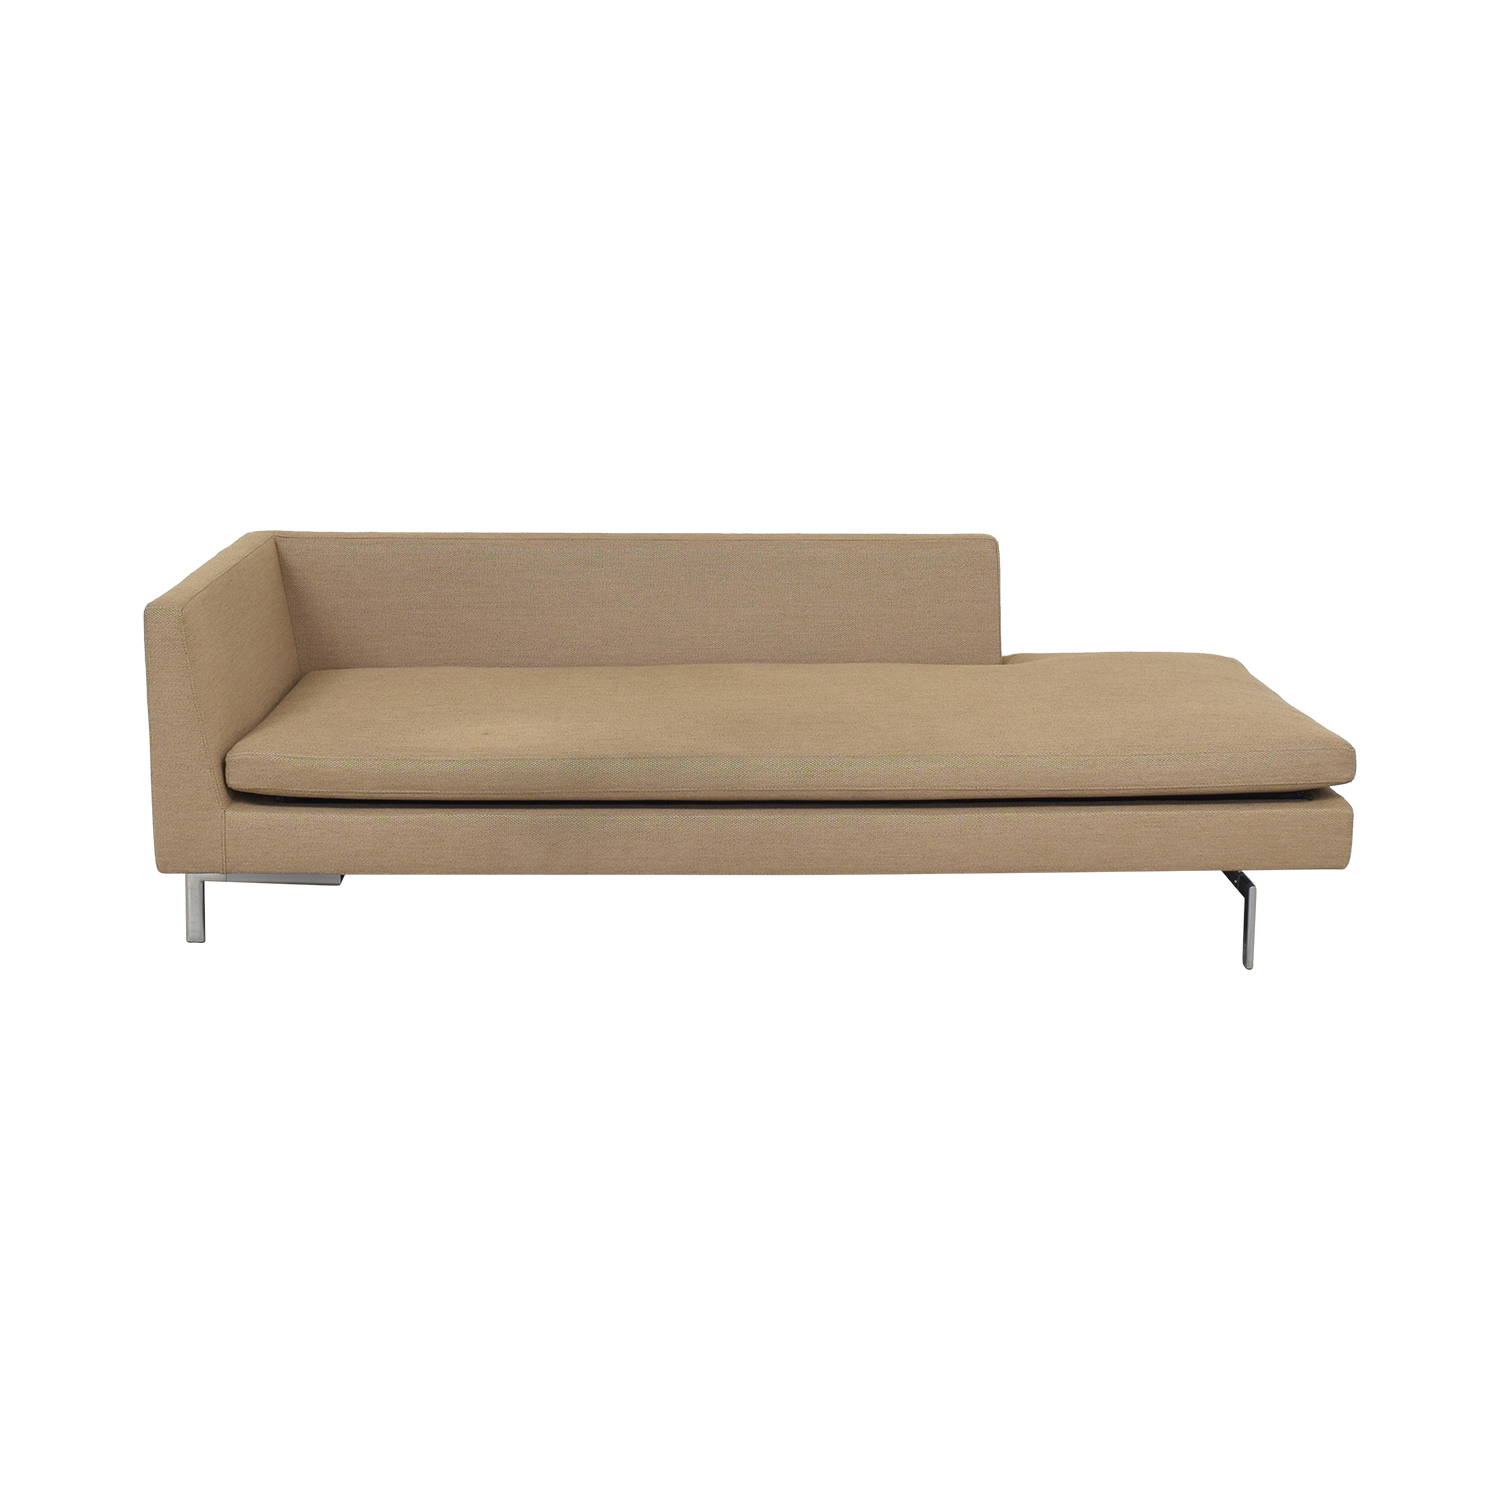 Ligne Roset Ligne Roset Chaise Lounge on sale